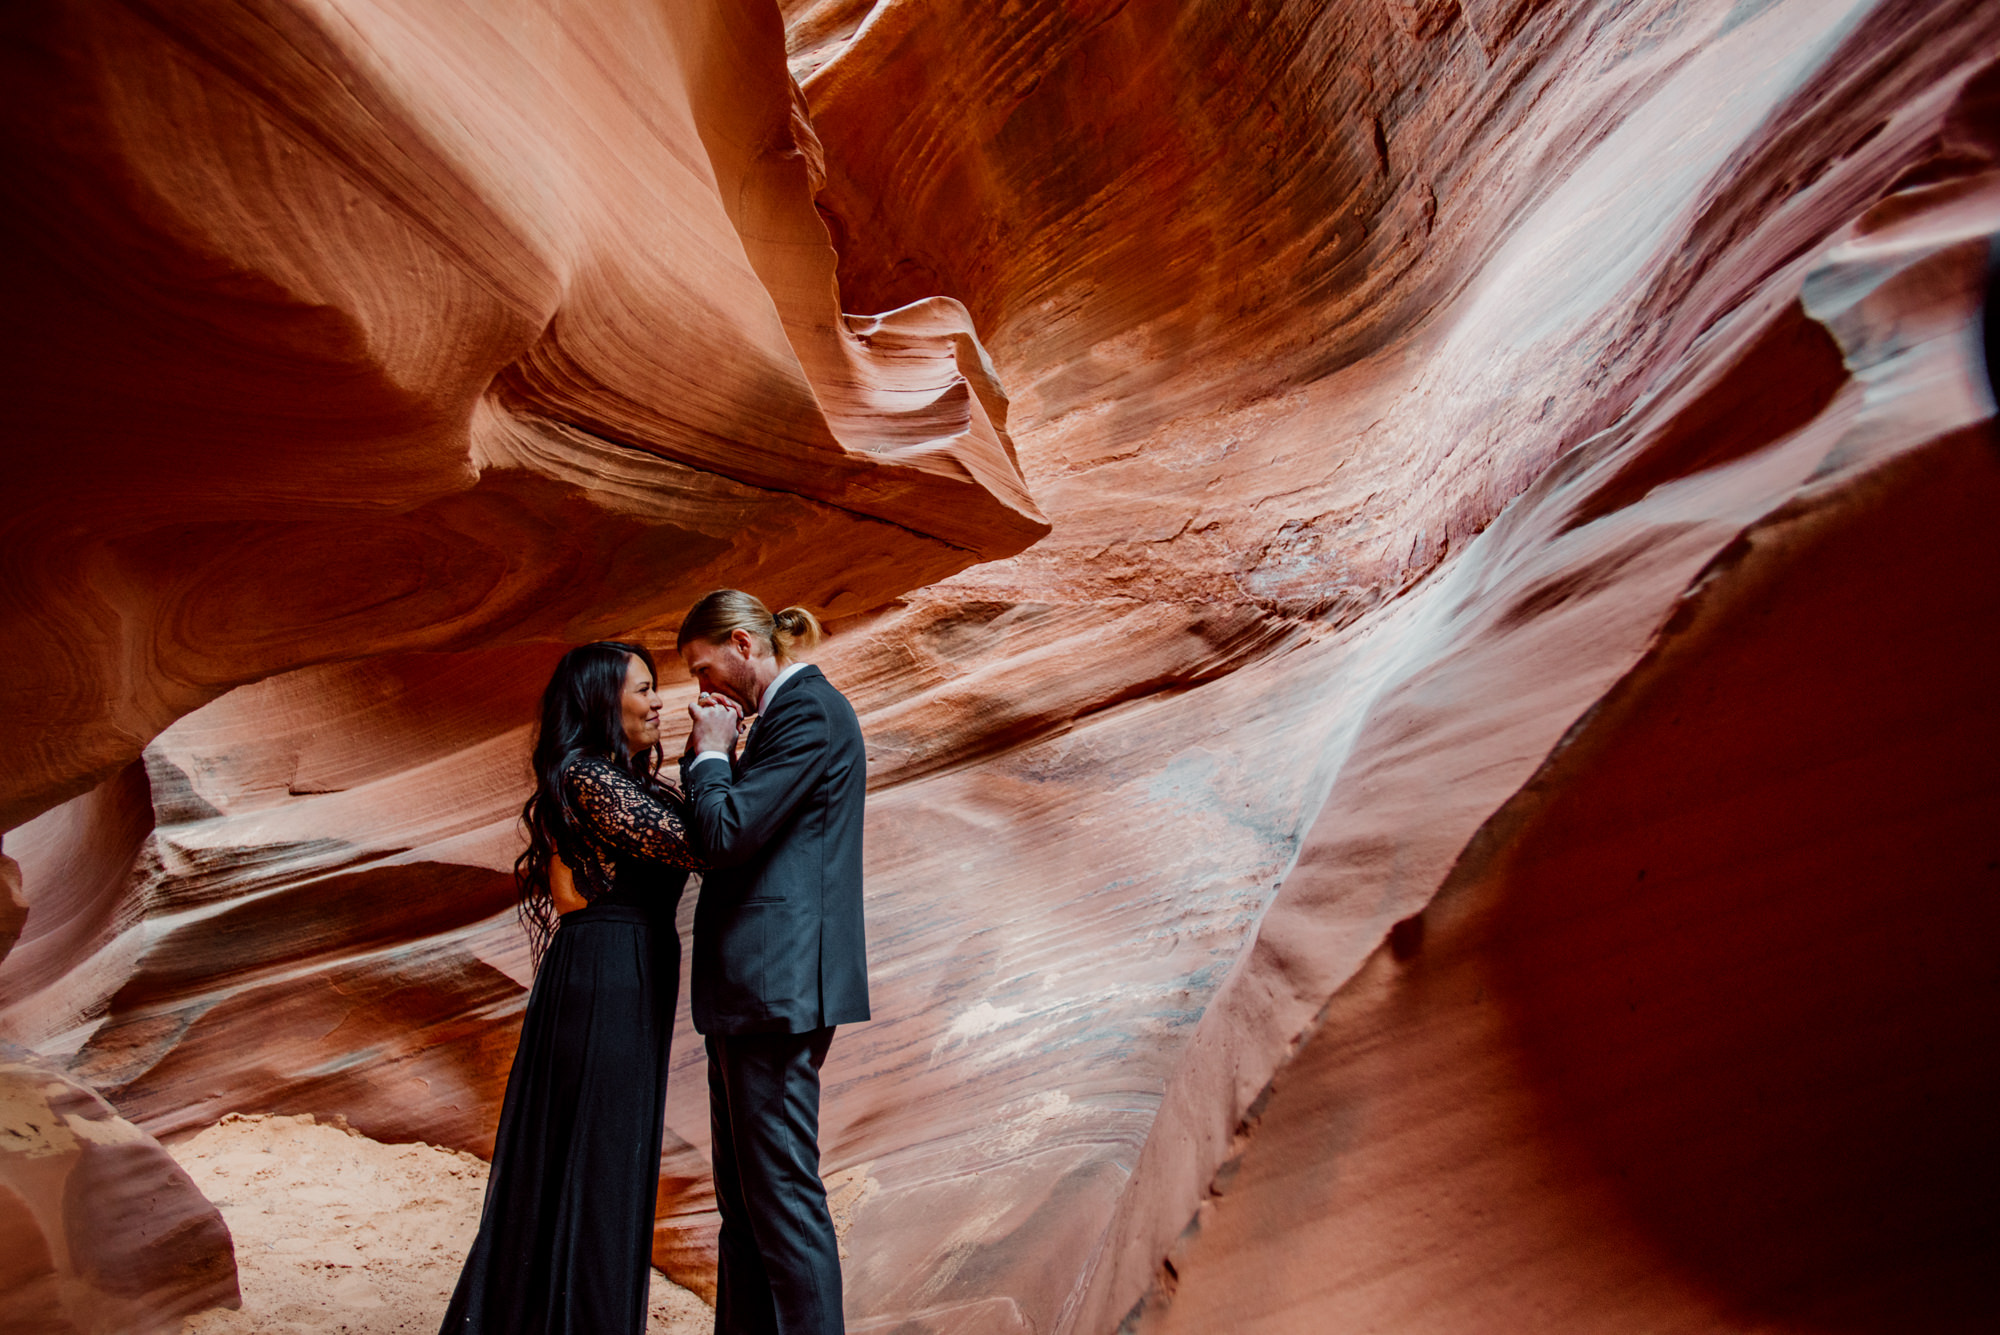 Visit Arizona for adventures for couples.